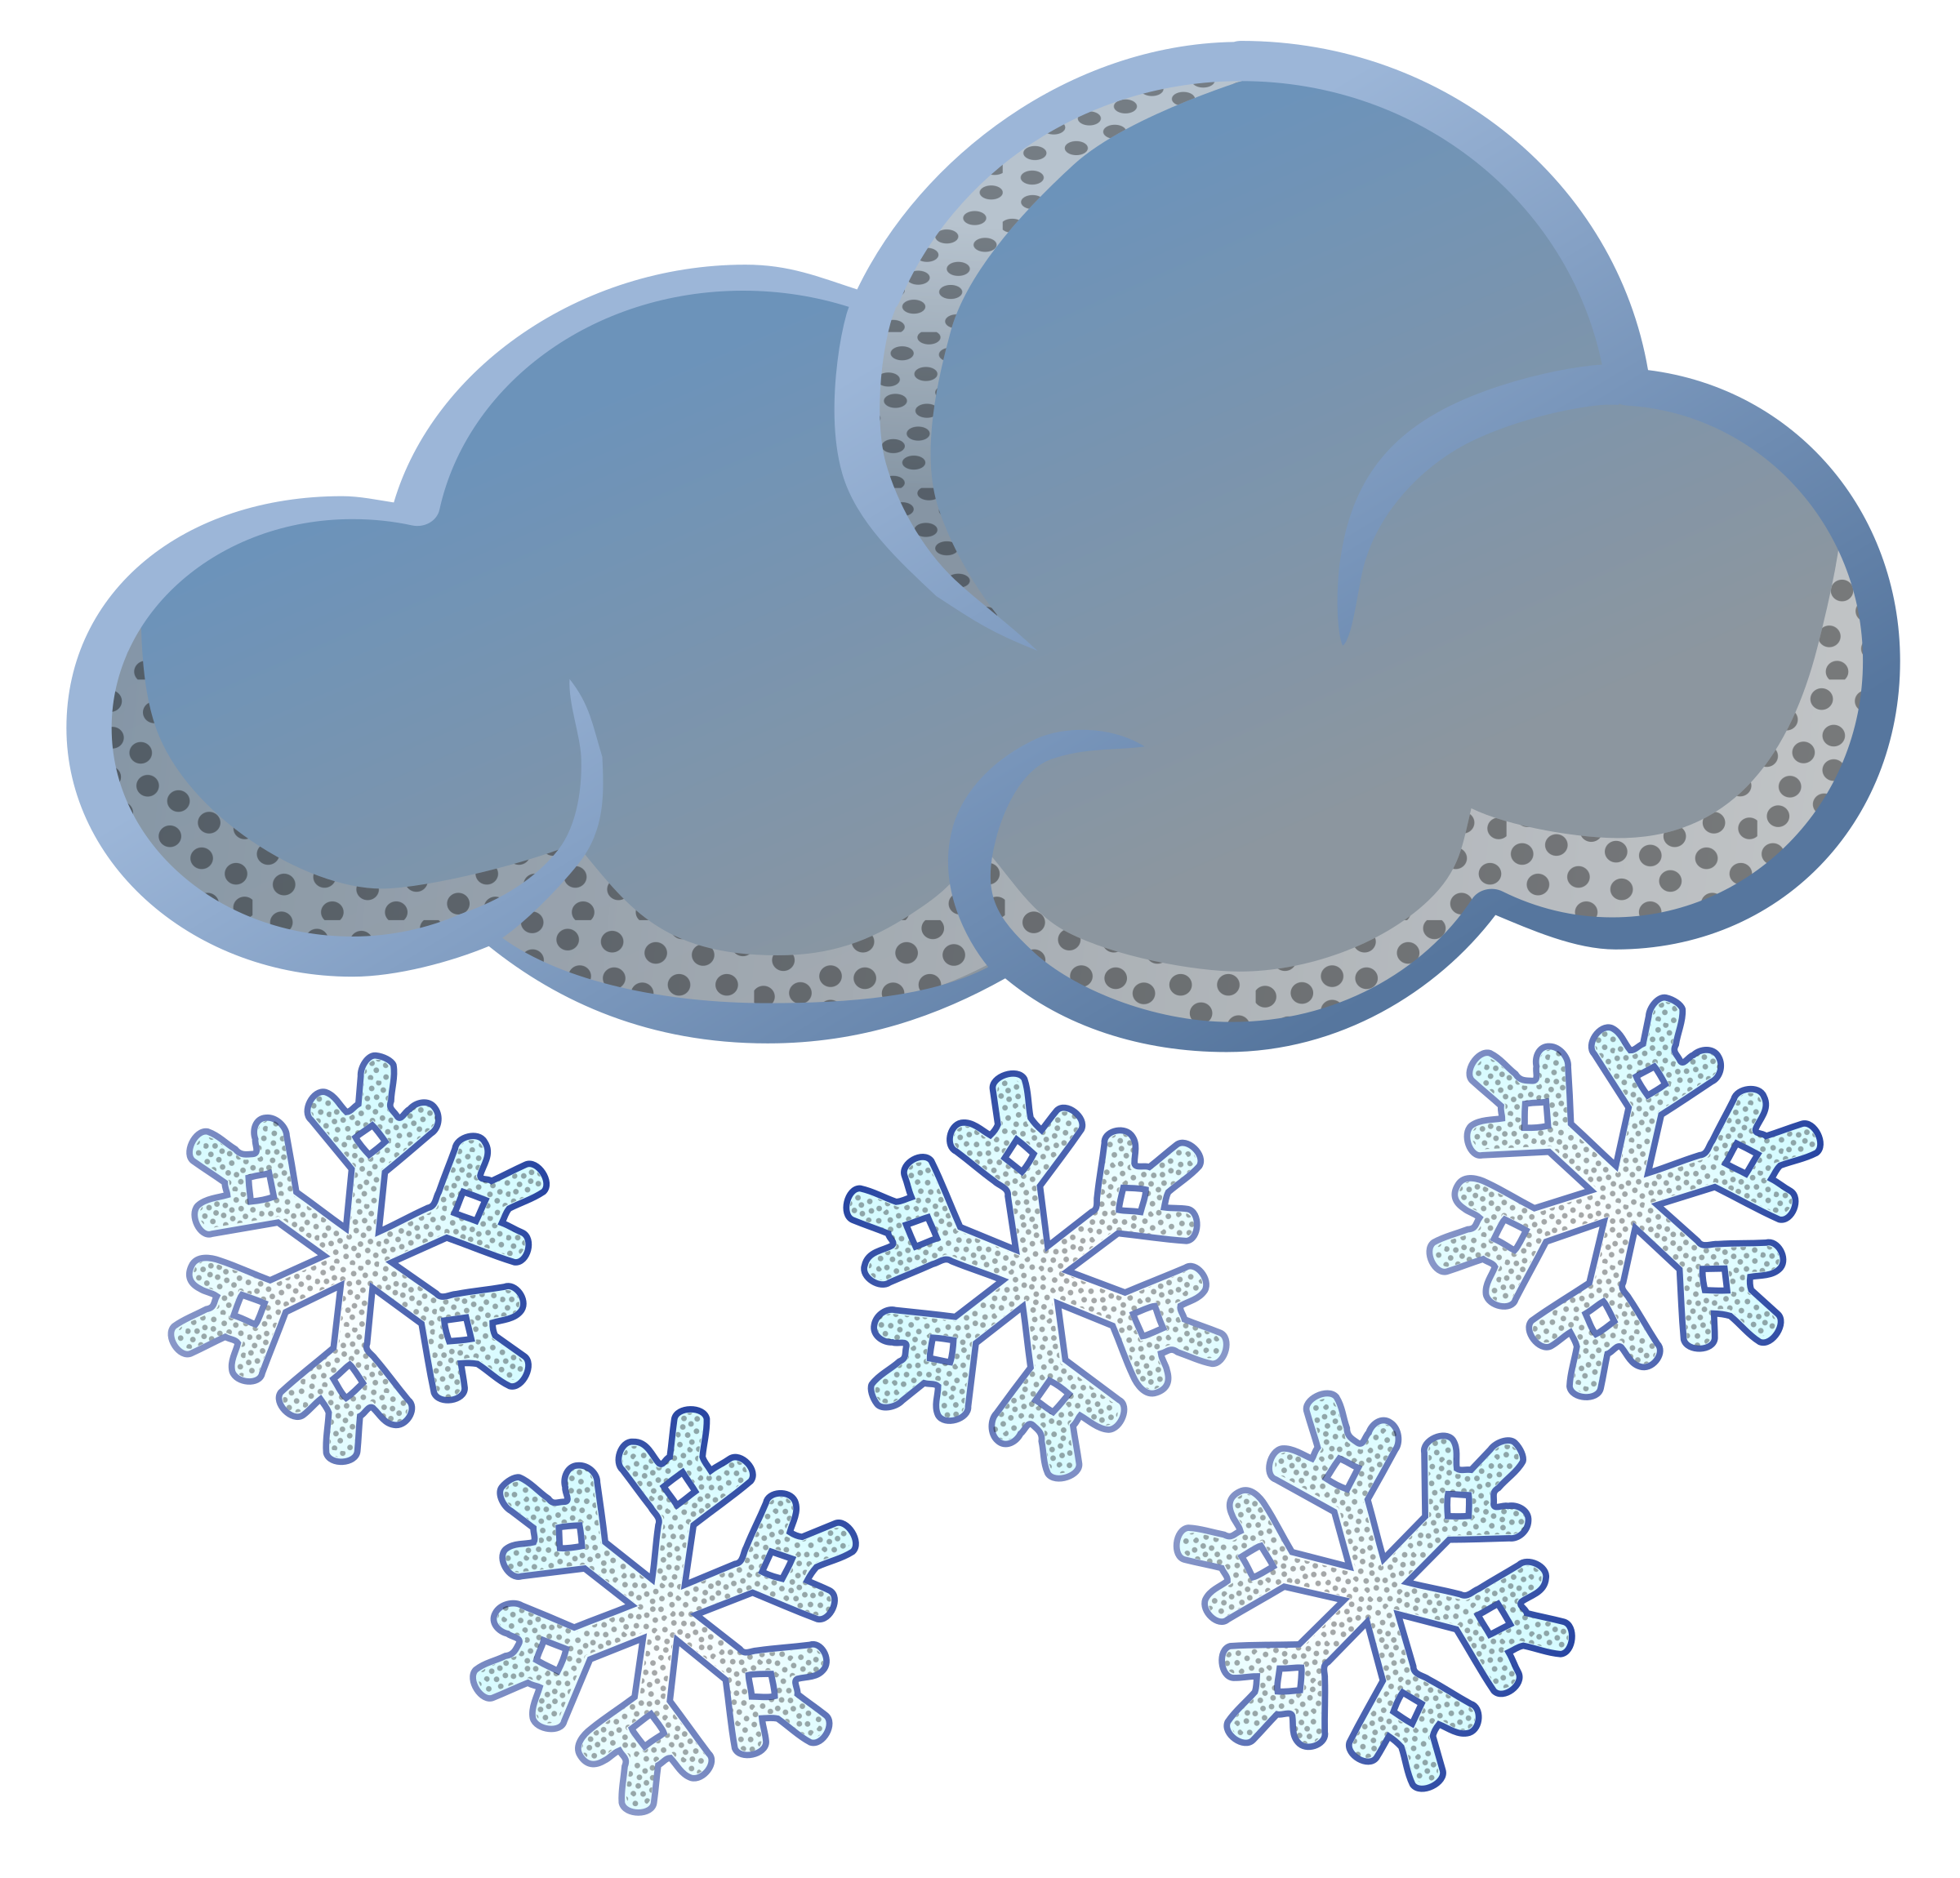 Snow clipart free image vector transparent library Snow clip art free clipart images - Cliparting.com vector transparent library